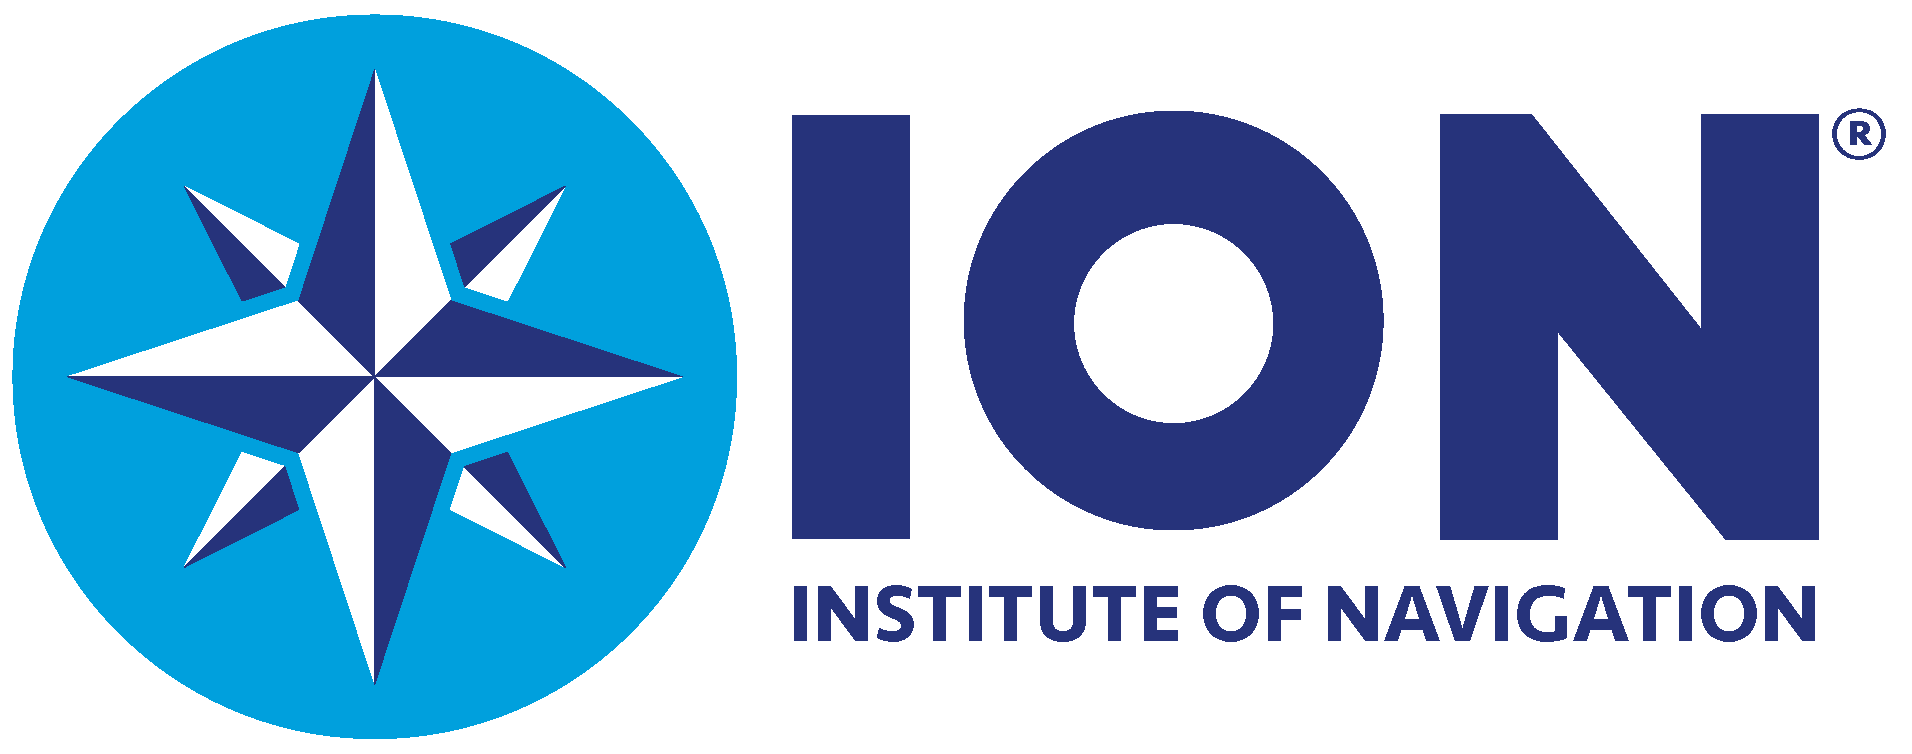 Nominations Being Taken for ION Fellows and Annual Awards